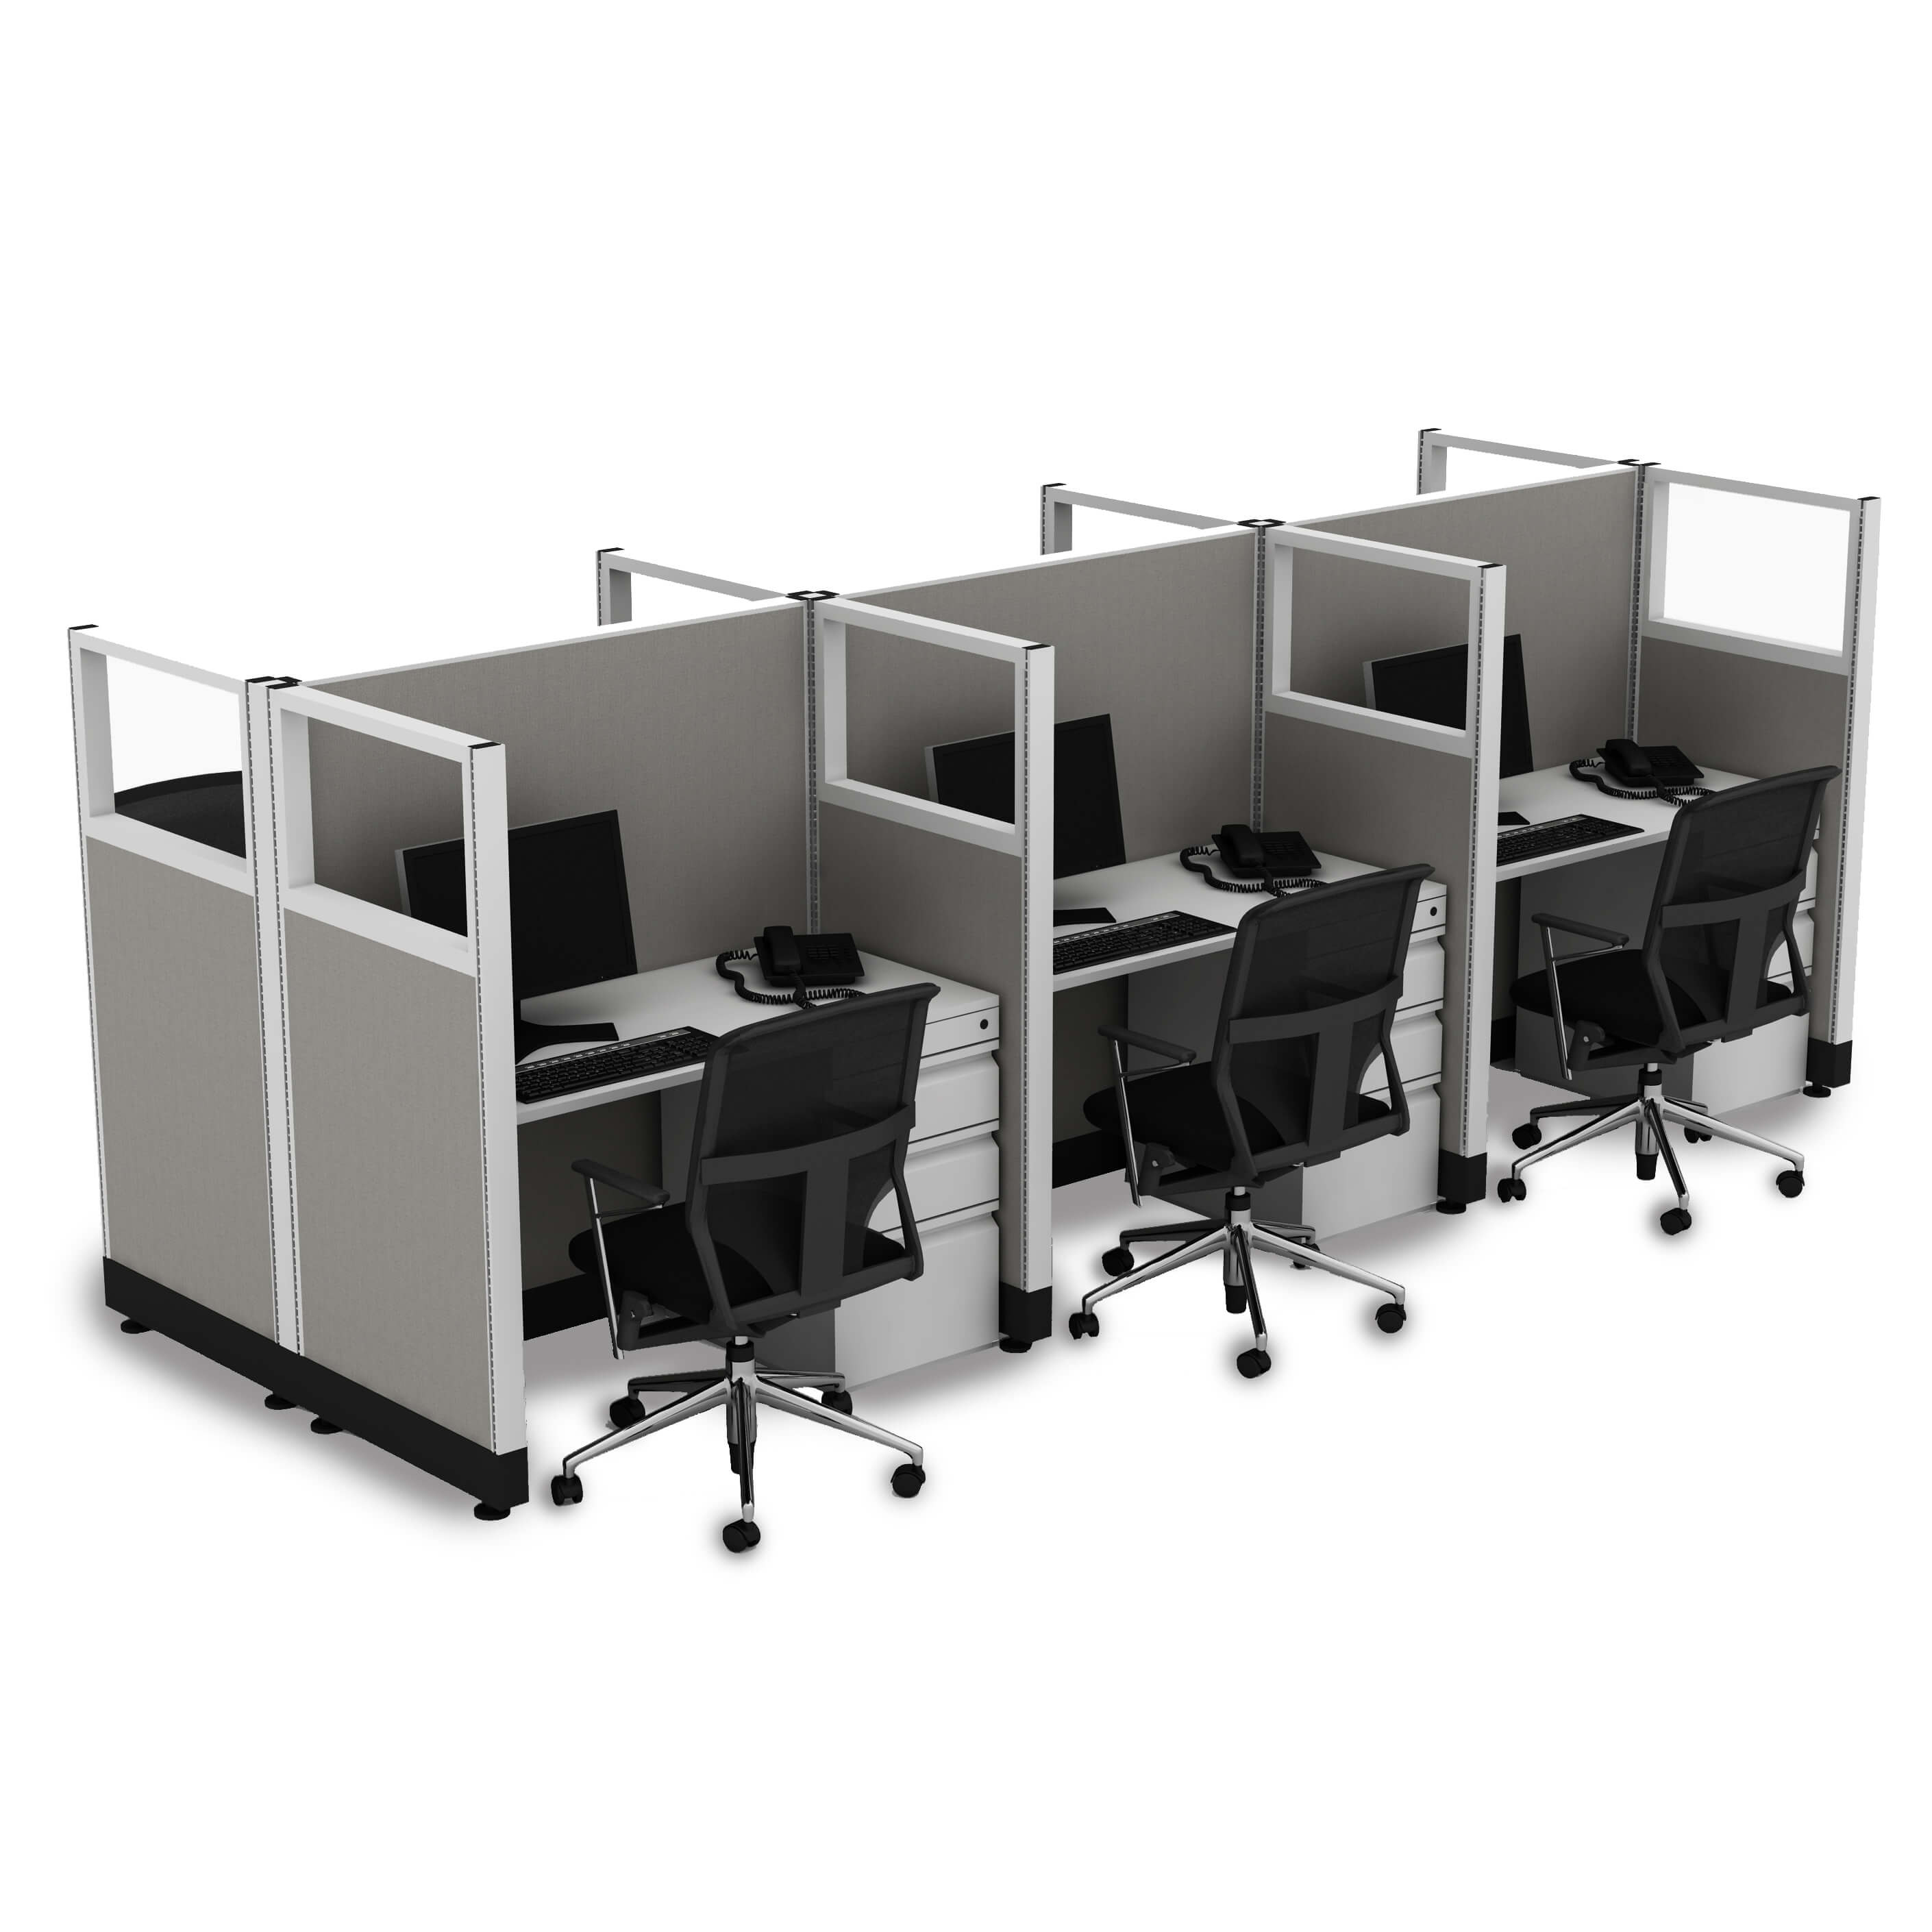 hot-desking-cubicle-workstations-6-pack-powered.jpg